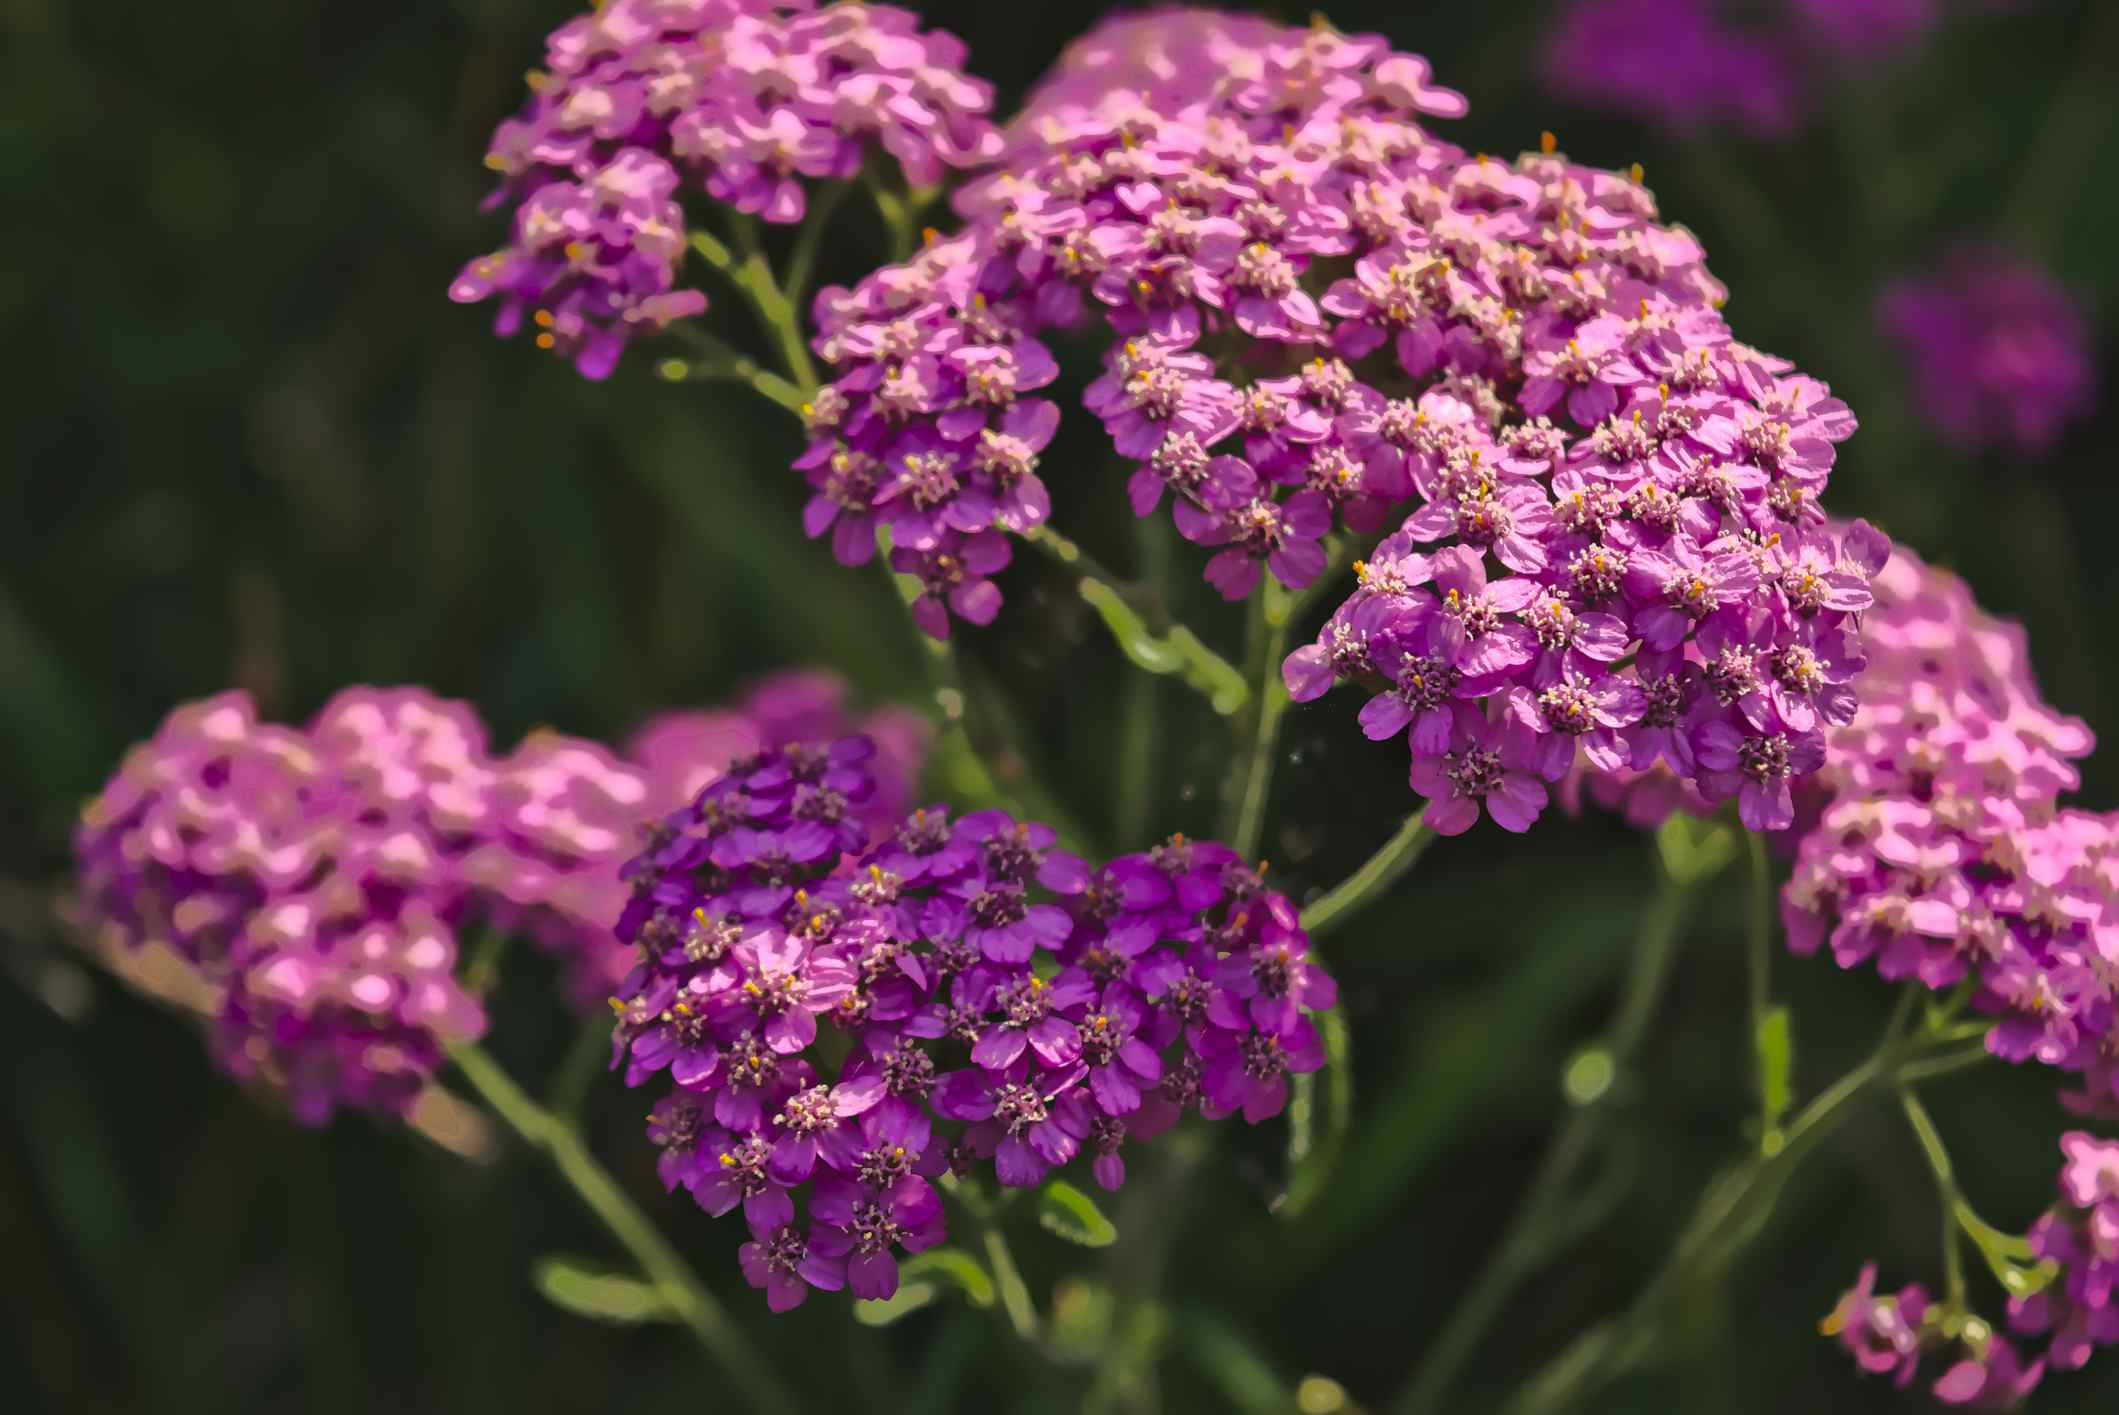 Yarrow plant with pink flowers.